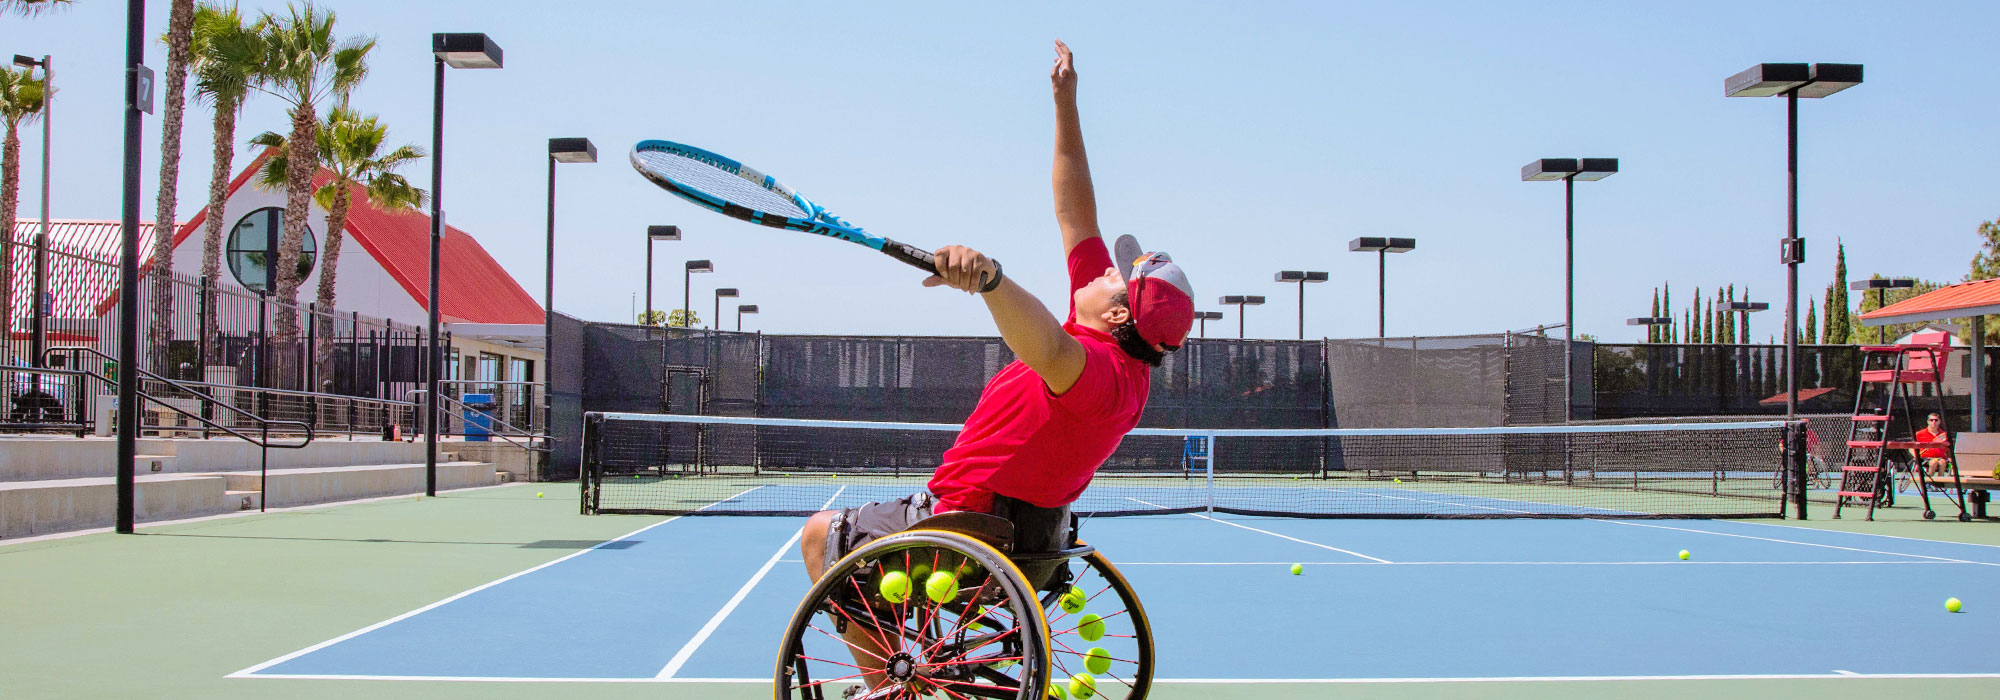 Adapted Athletics - Serve practice on Tennis Court in wheelchair